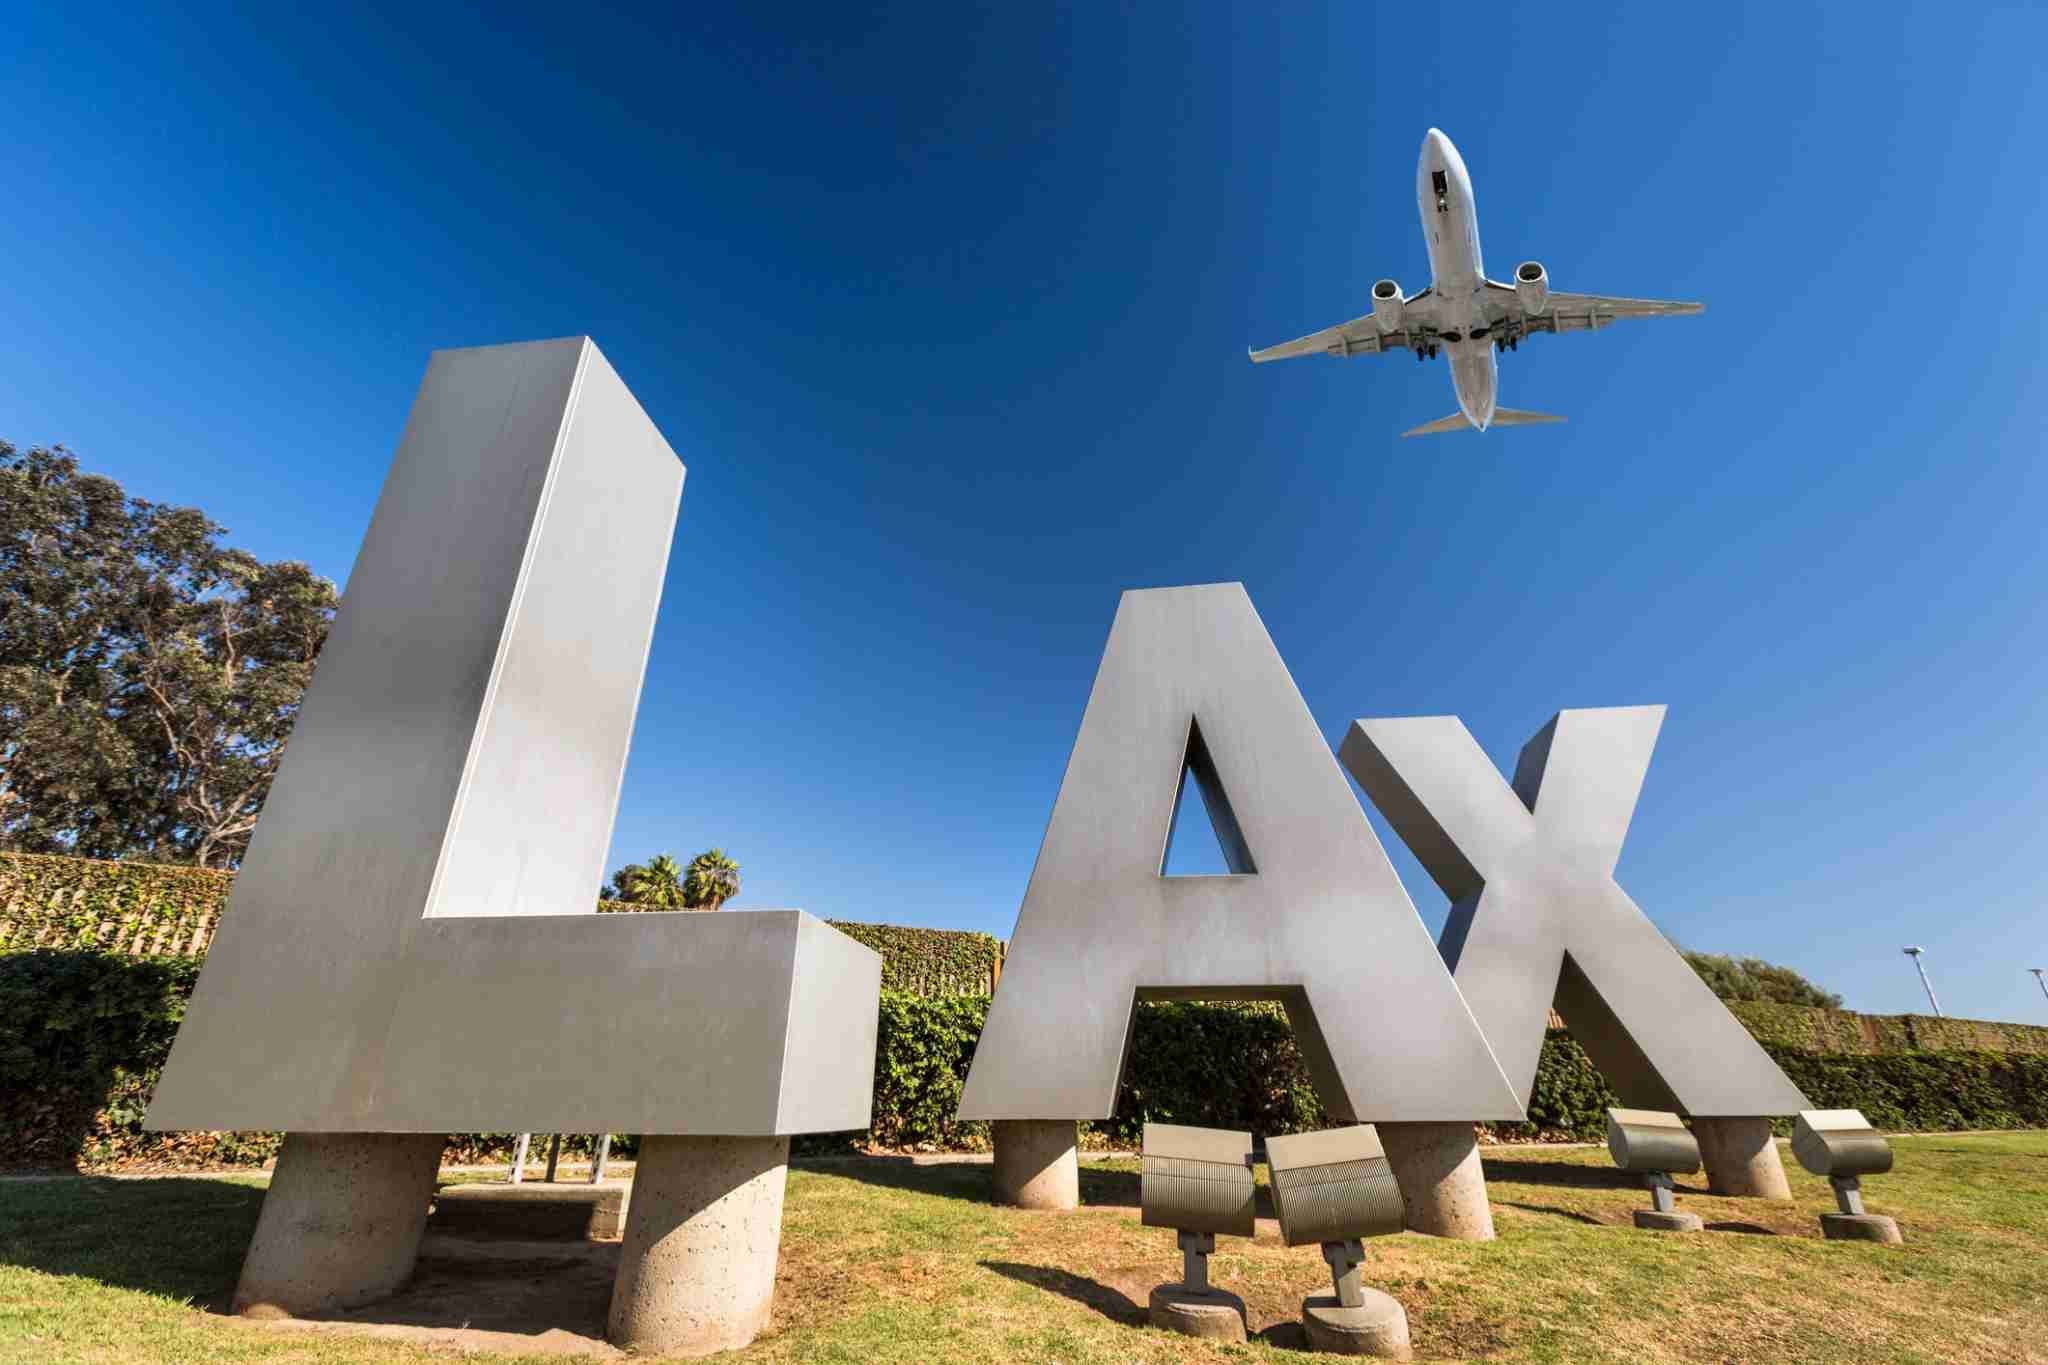 how many hours is the flight from lax to hawaii